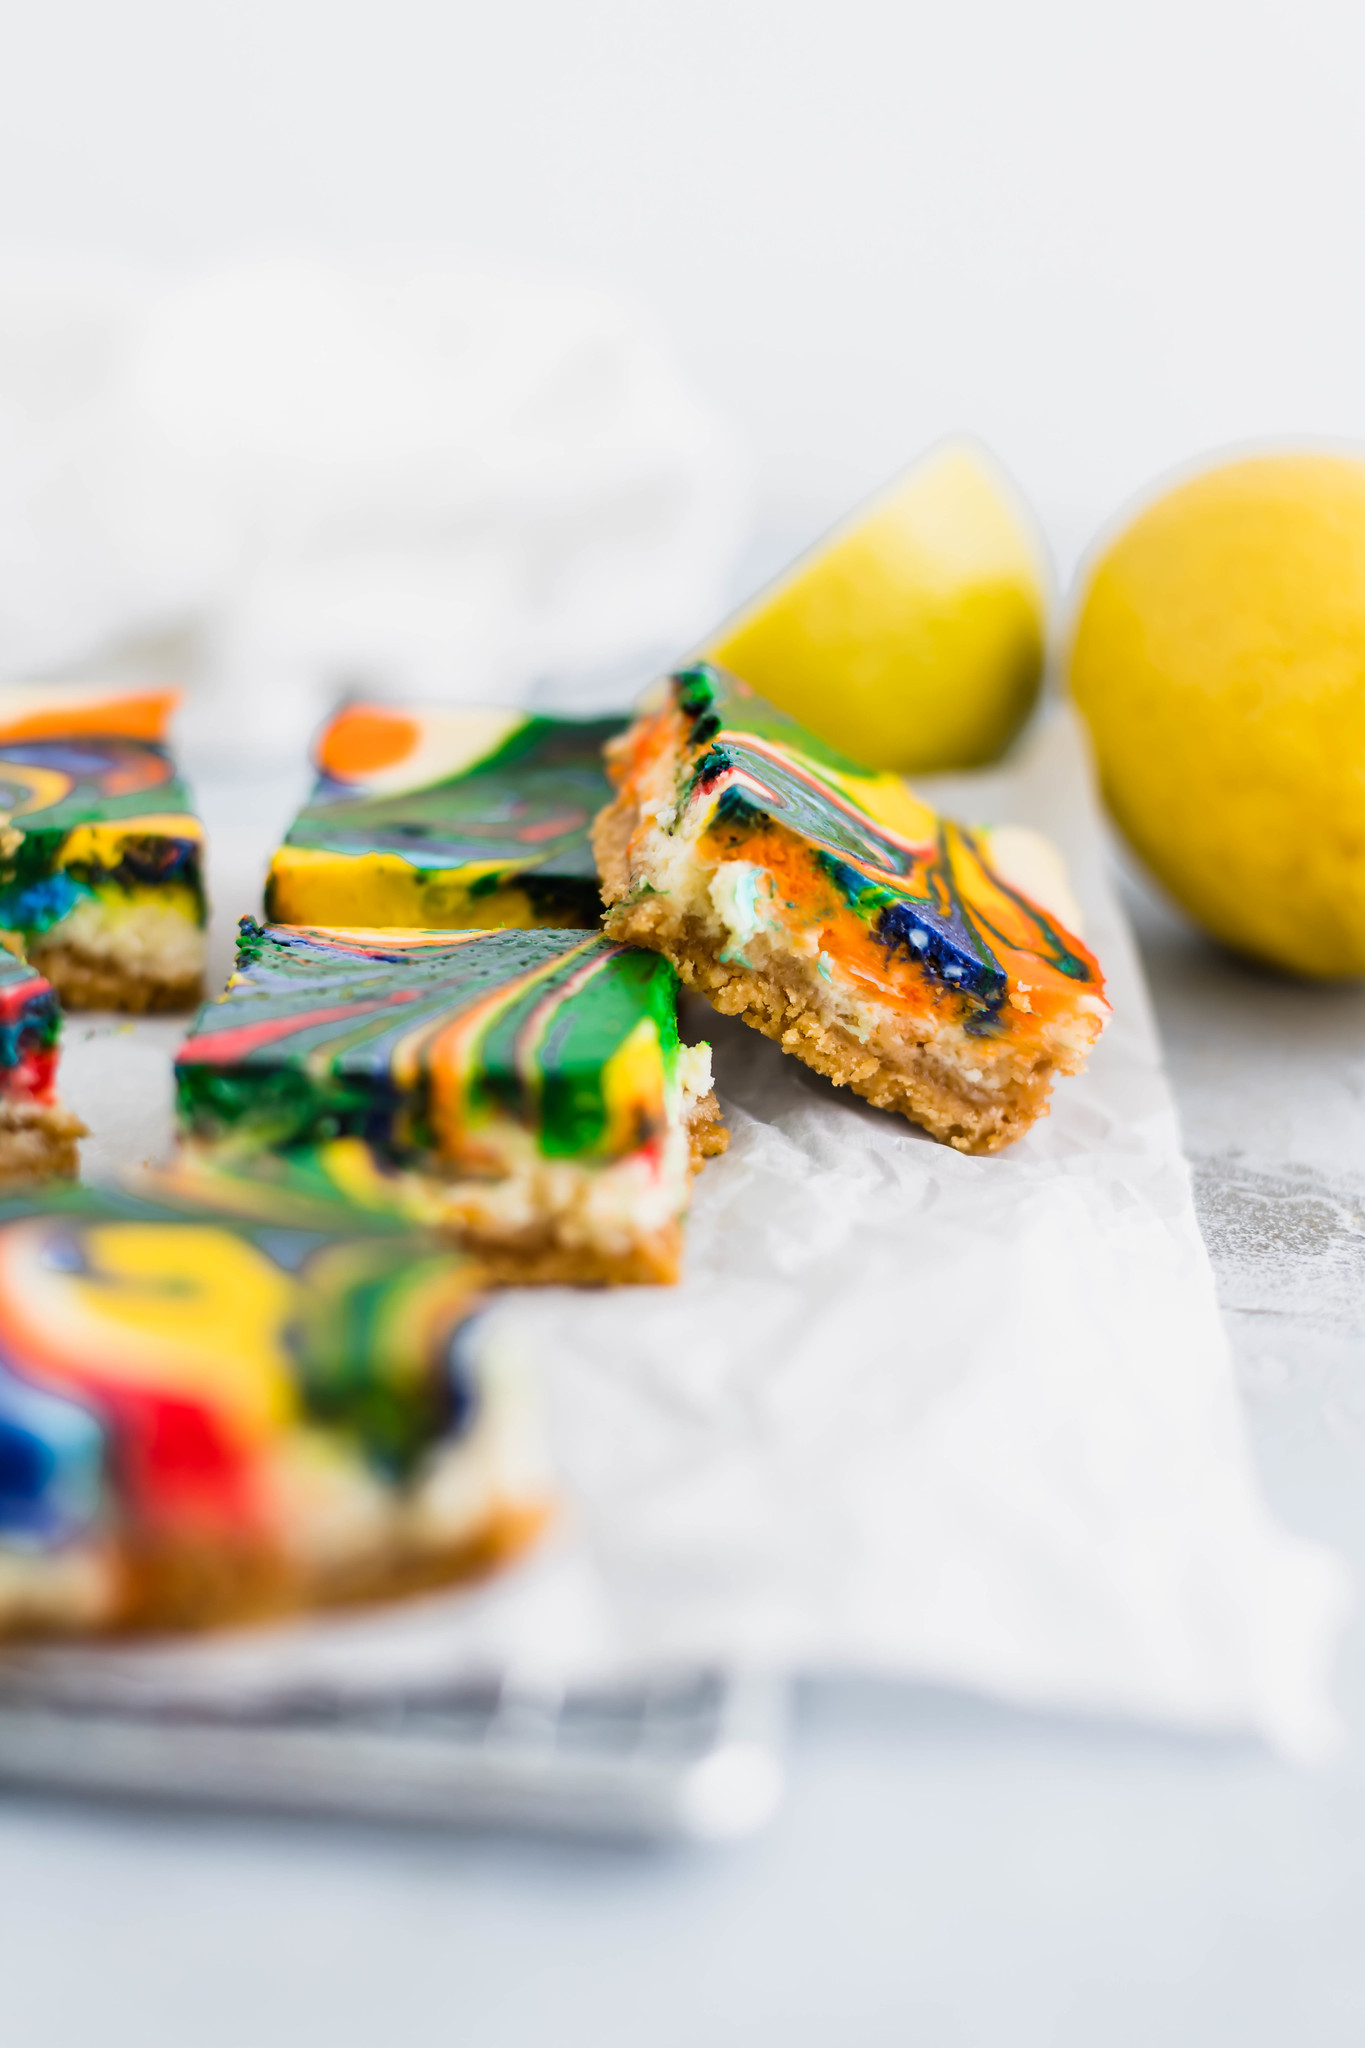 Celebrate St. Patrick's Day with these adorable, incredibly delicious Rainbow Lemon Cheesecake Bars. A lemon oreo crust is topped with a simple lemon cheesecake filling then swirled with all the colors of the rainbow. Switch up the colors of these cheesecake bars to make them for any occasion.